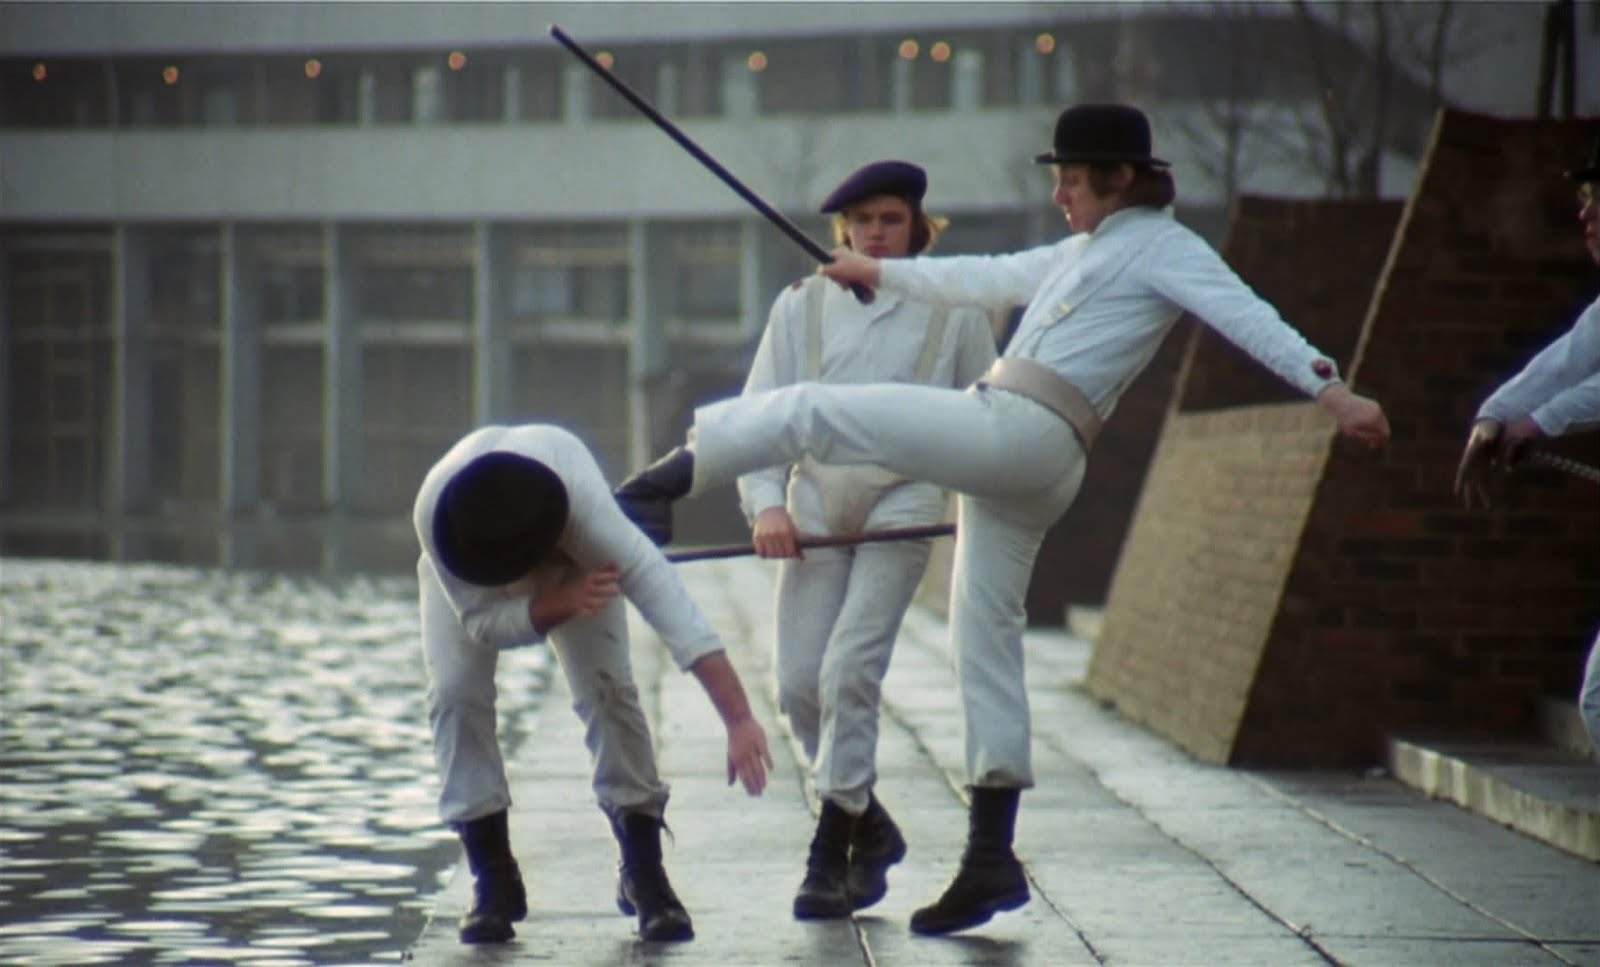 a clockwork orange gang  A Clockwork Orange Cane